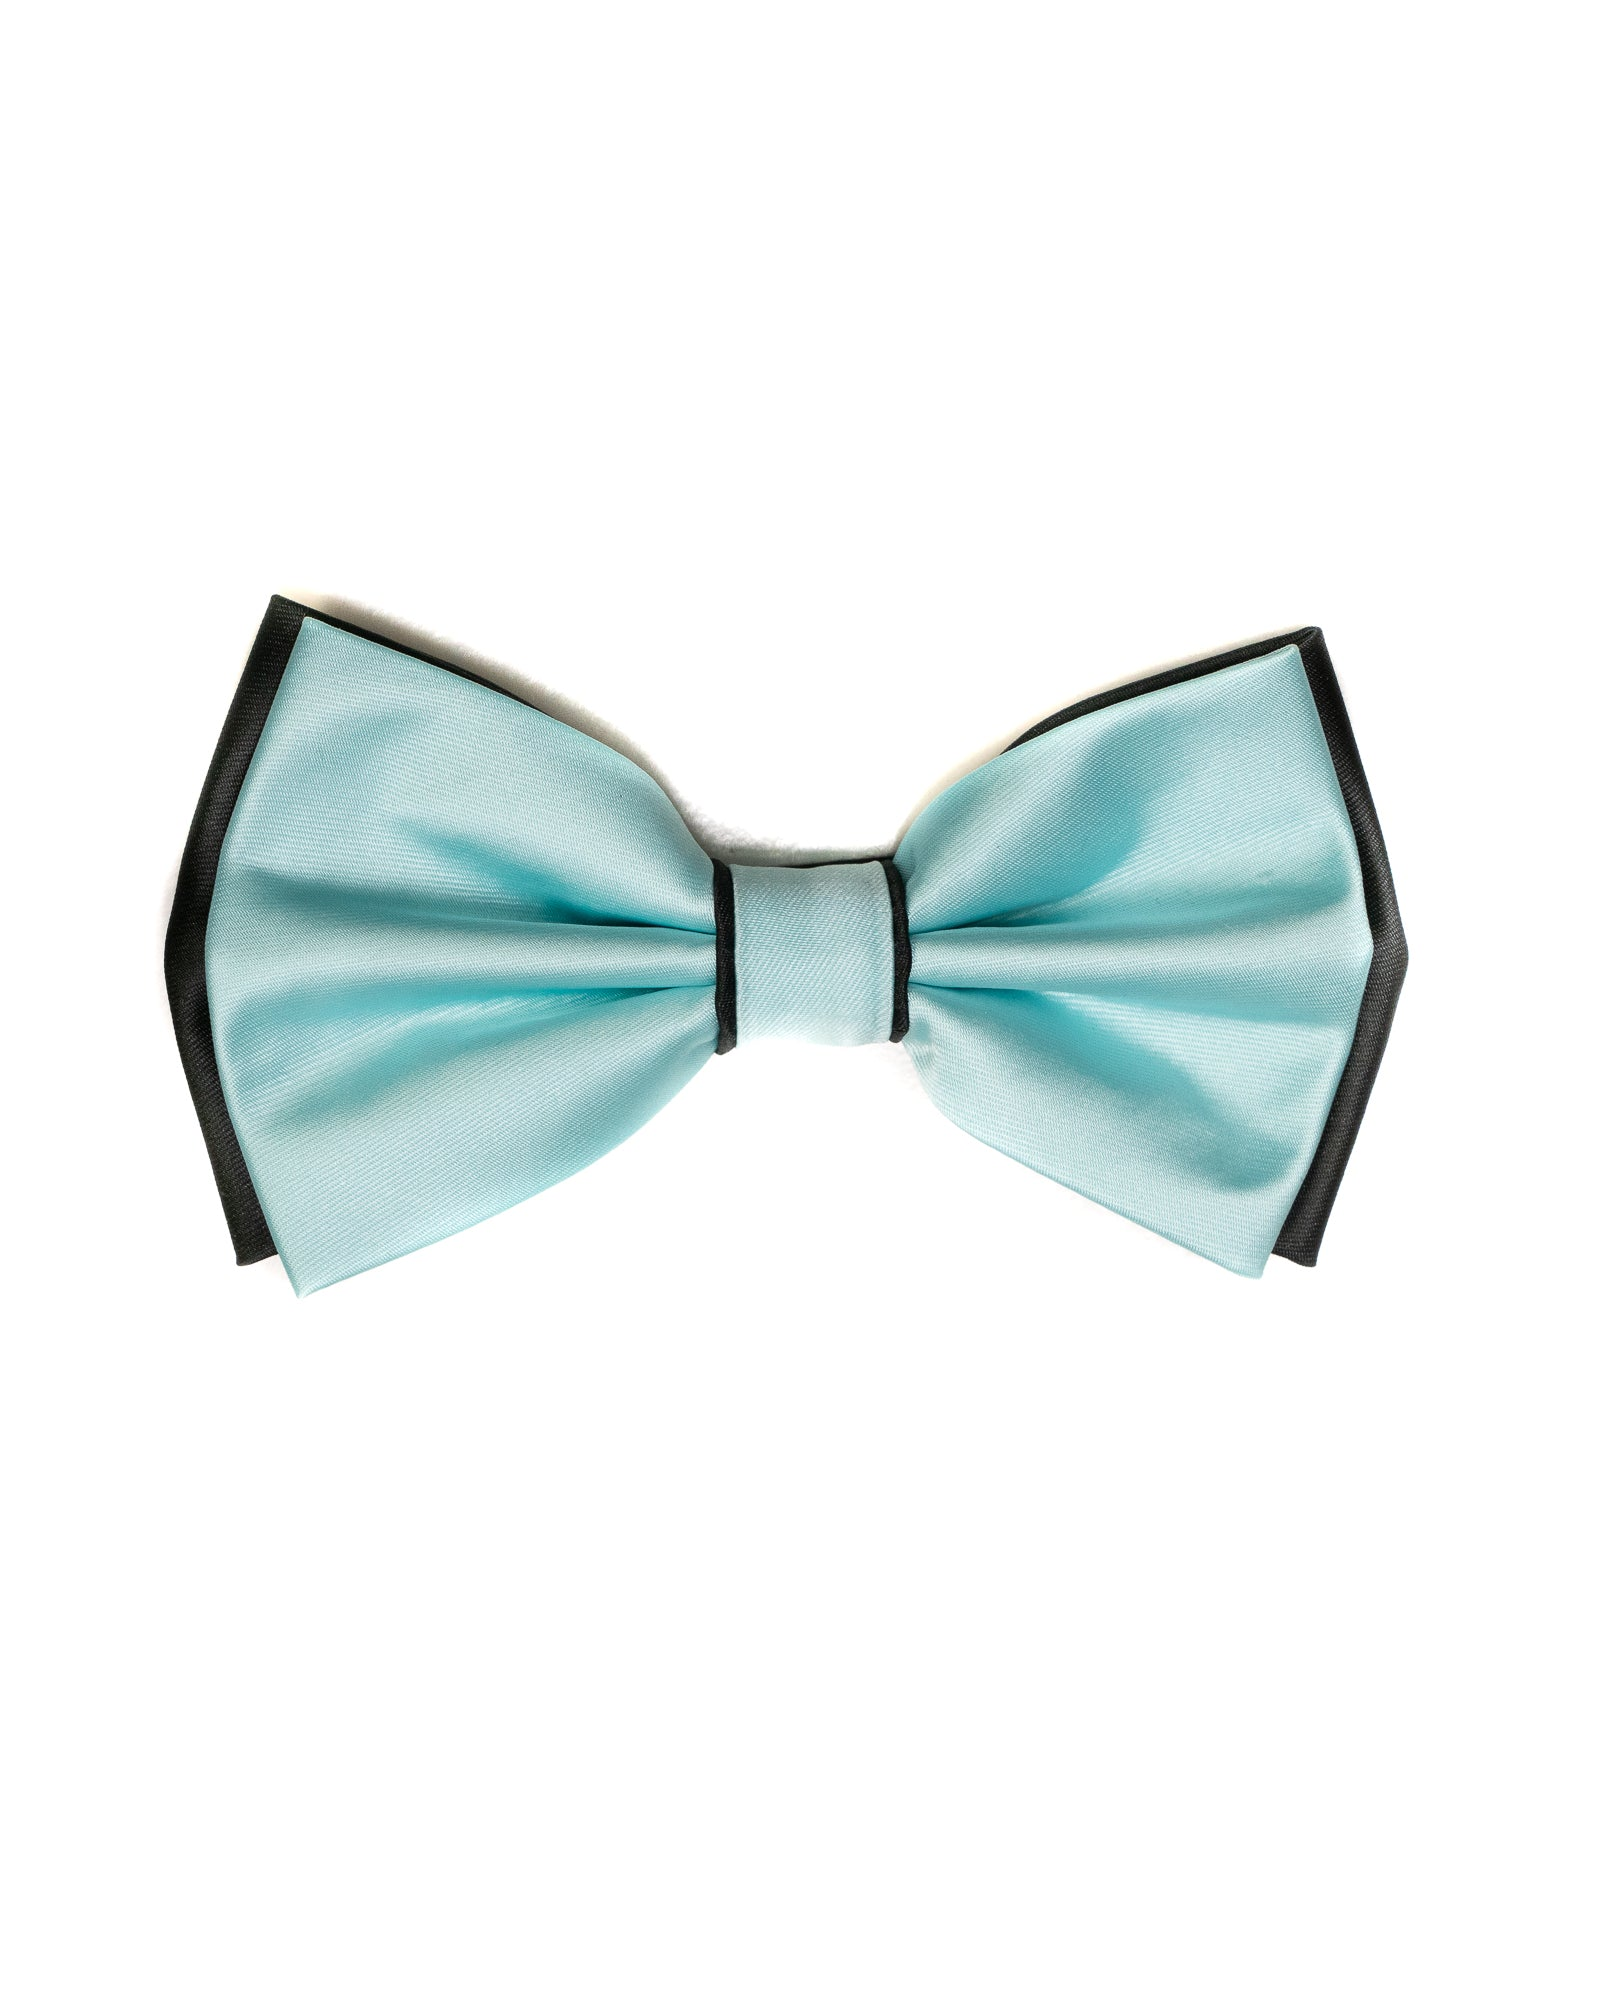 Bow Tie In Two Tone With Two Pocket Squares In Mint & Black - Rainwater's